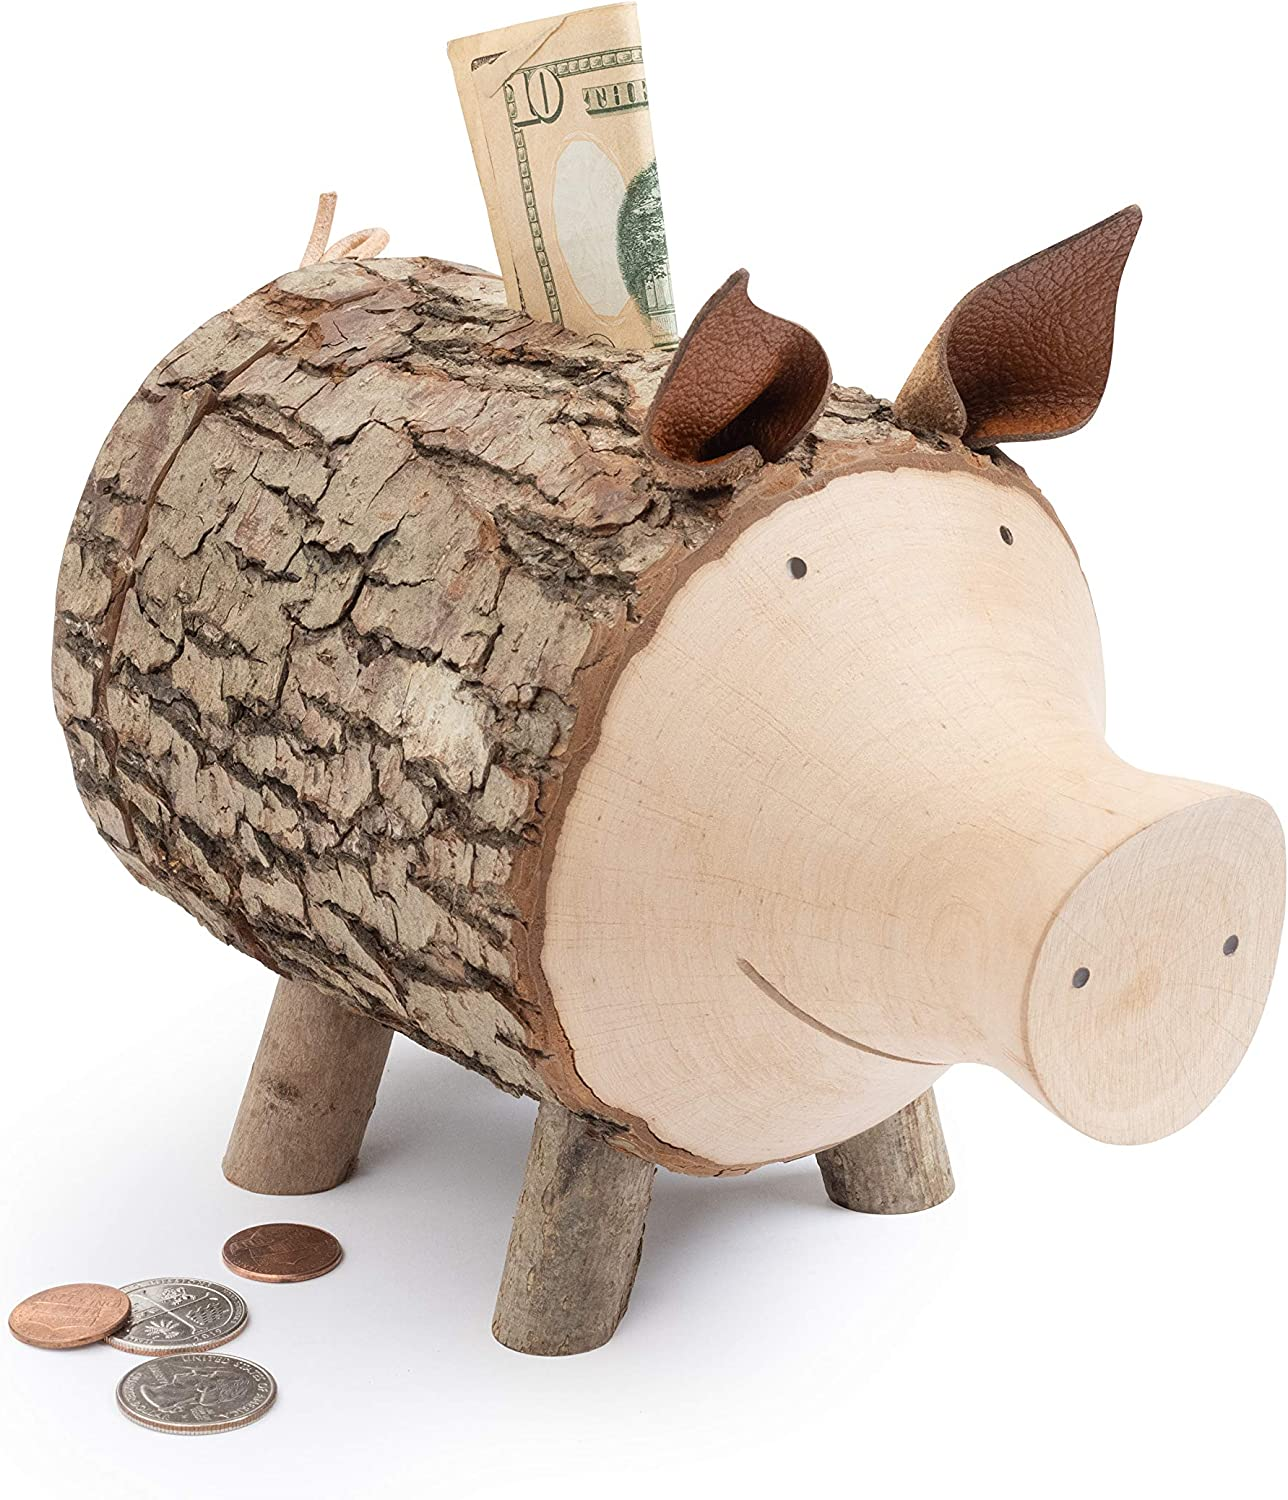 Manufacturer regenerated product Max 68% OFF Forest Decor Wood Piggy Bank Co Savings Handcrafted Money